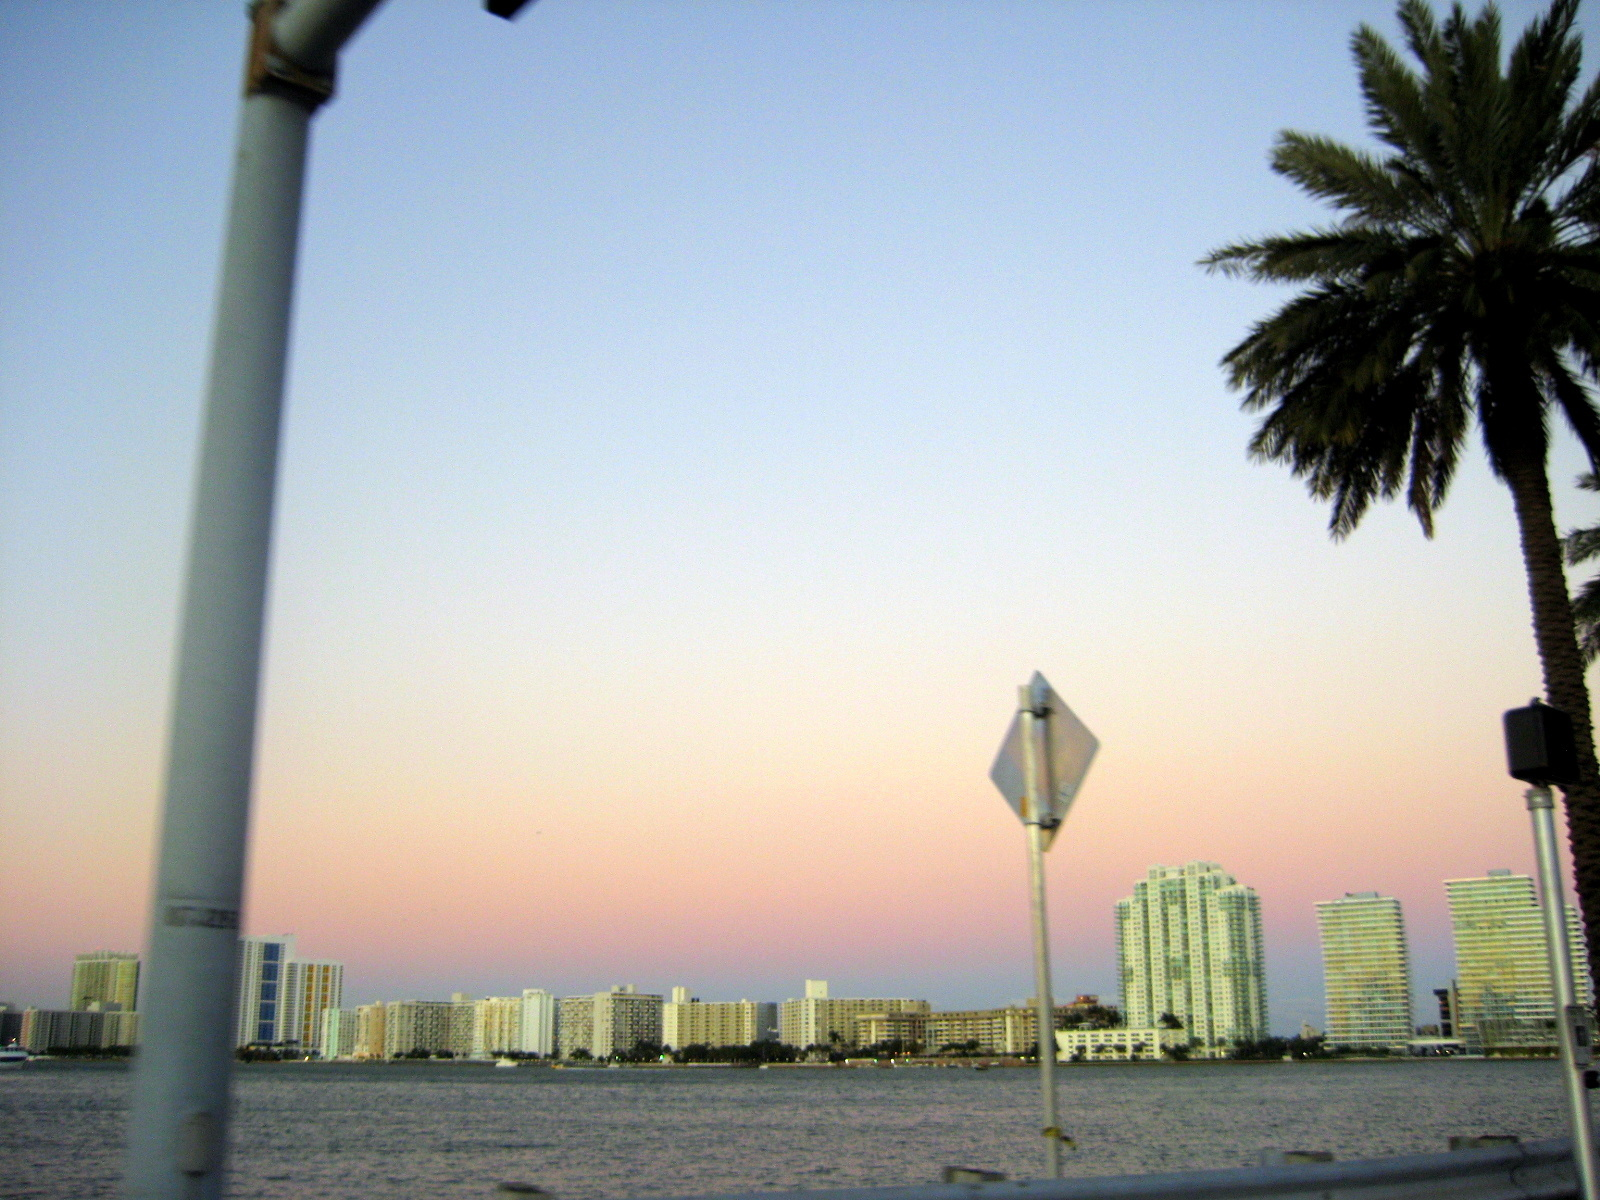 View of South Beach from the highway | Jasmine Chorley Foster